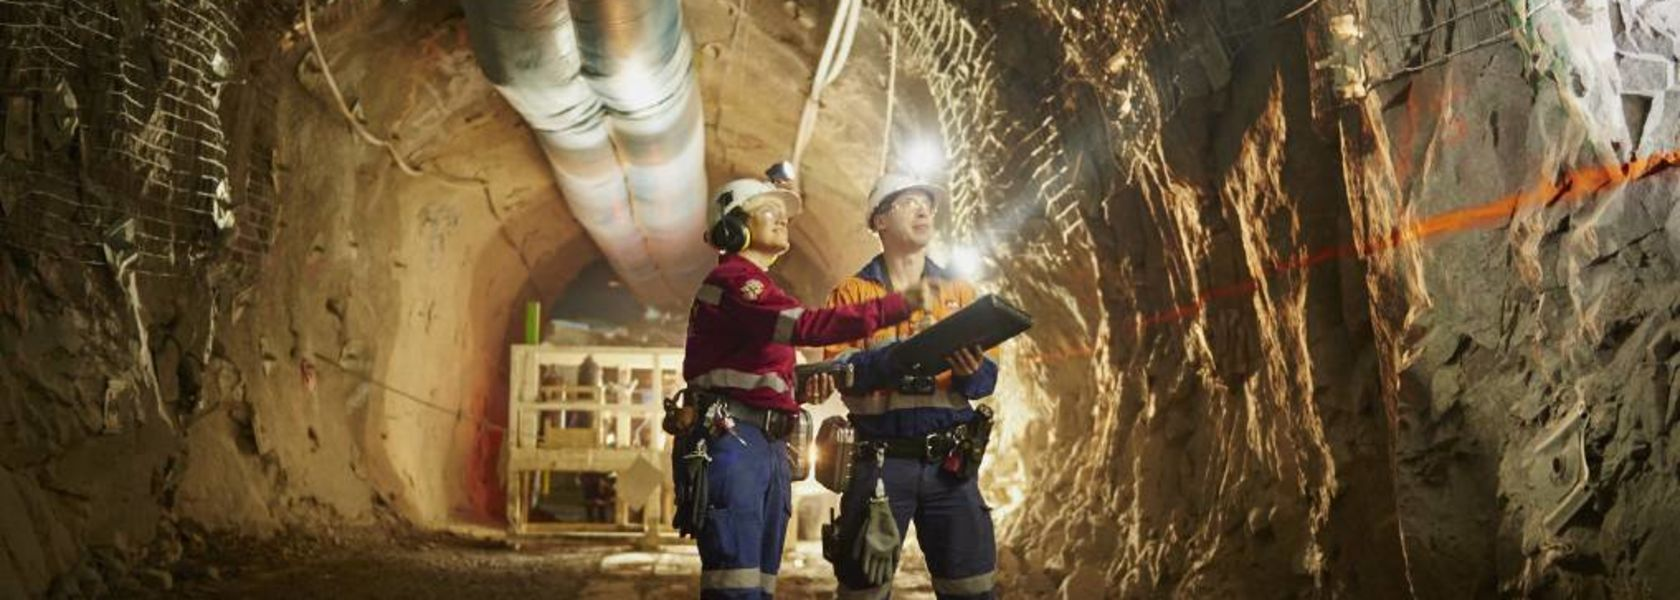 Northparkes expands with new block cave mine